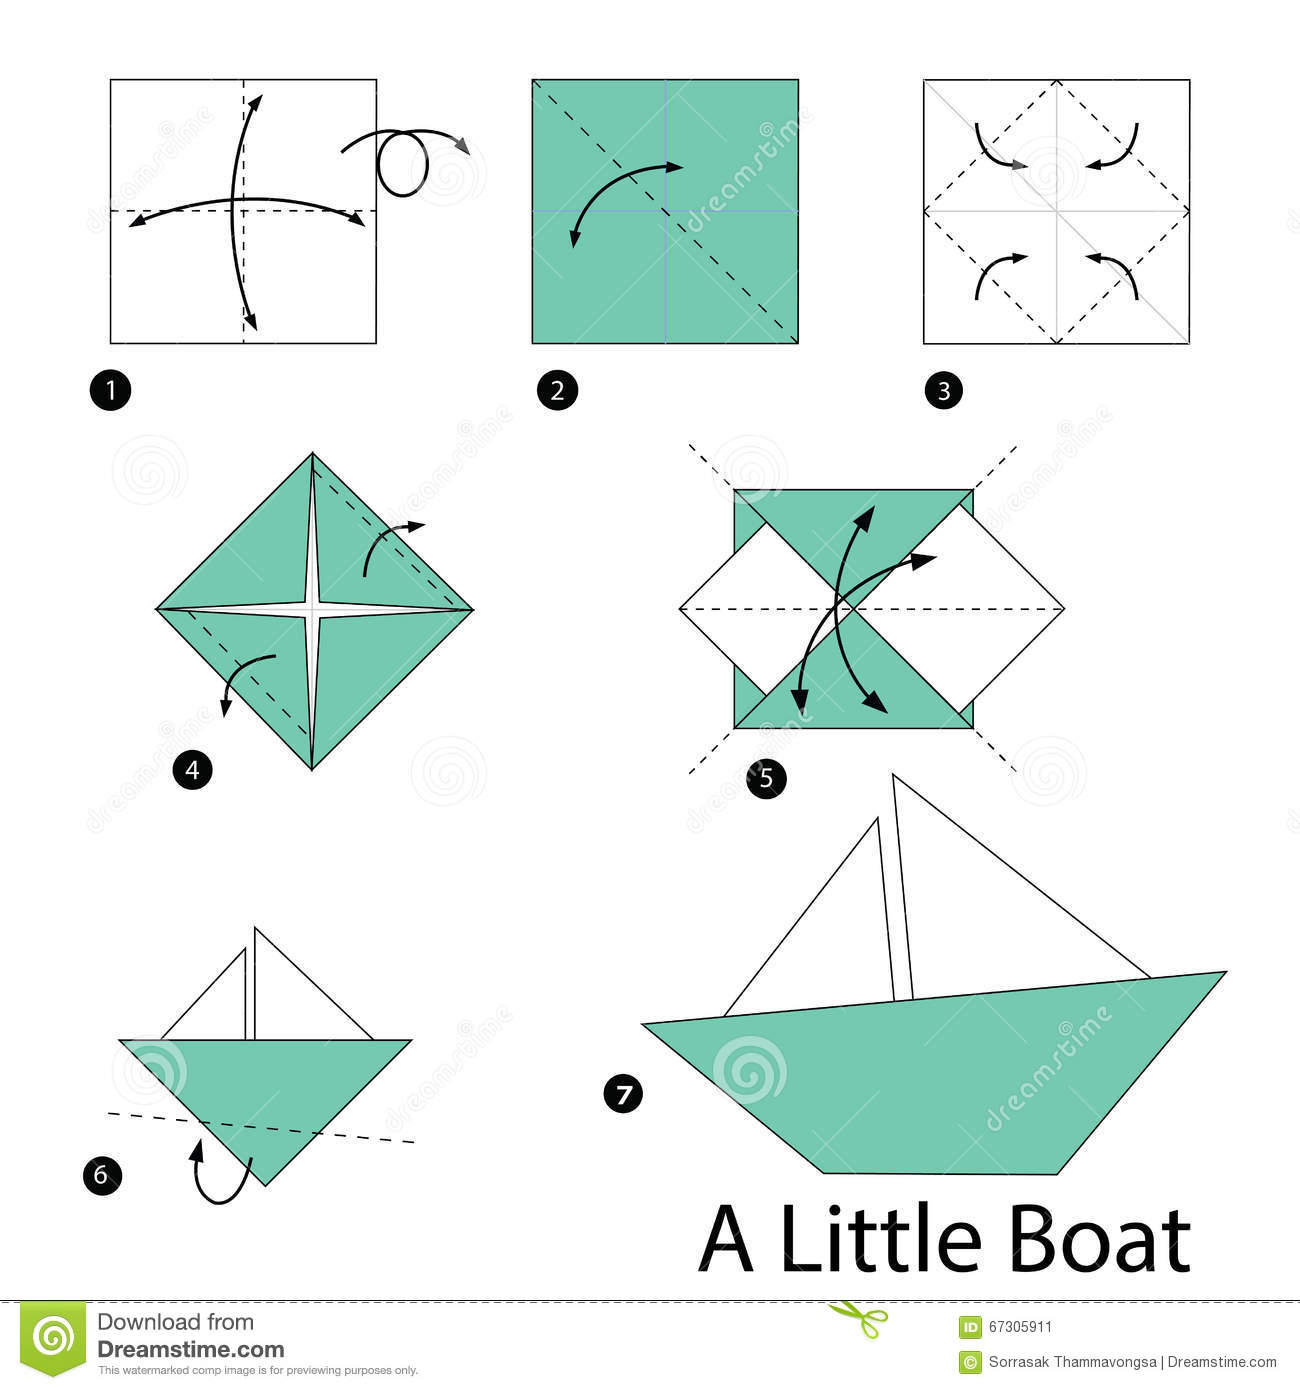 Papier Dampfer Falten Step By Step Instructions How To Make Origami A Little